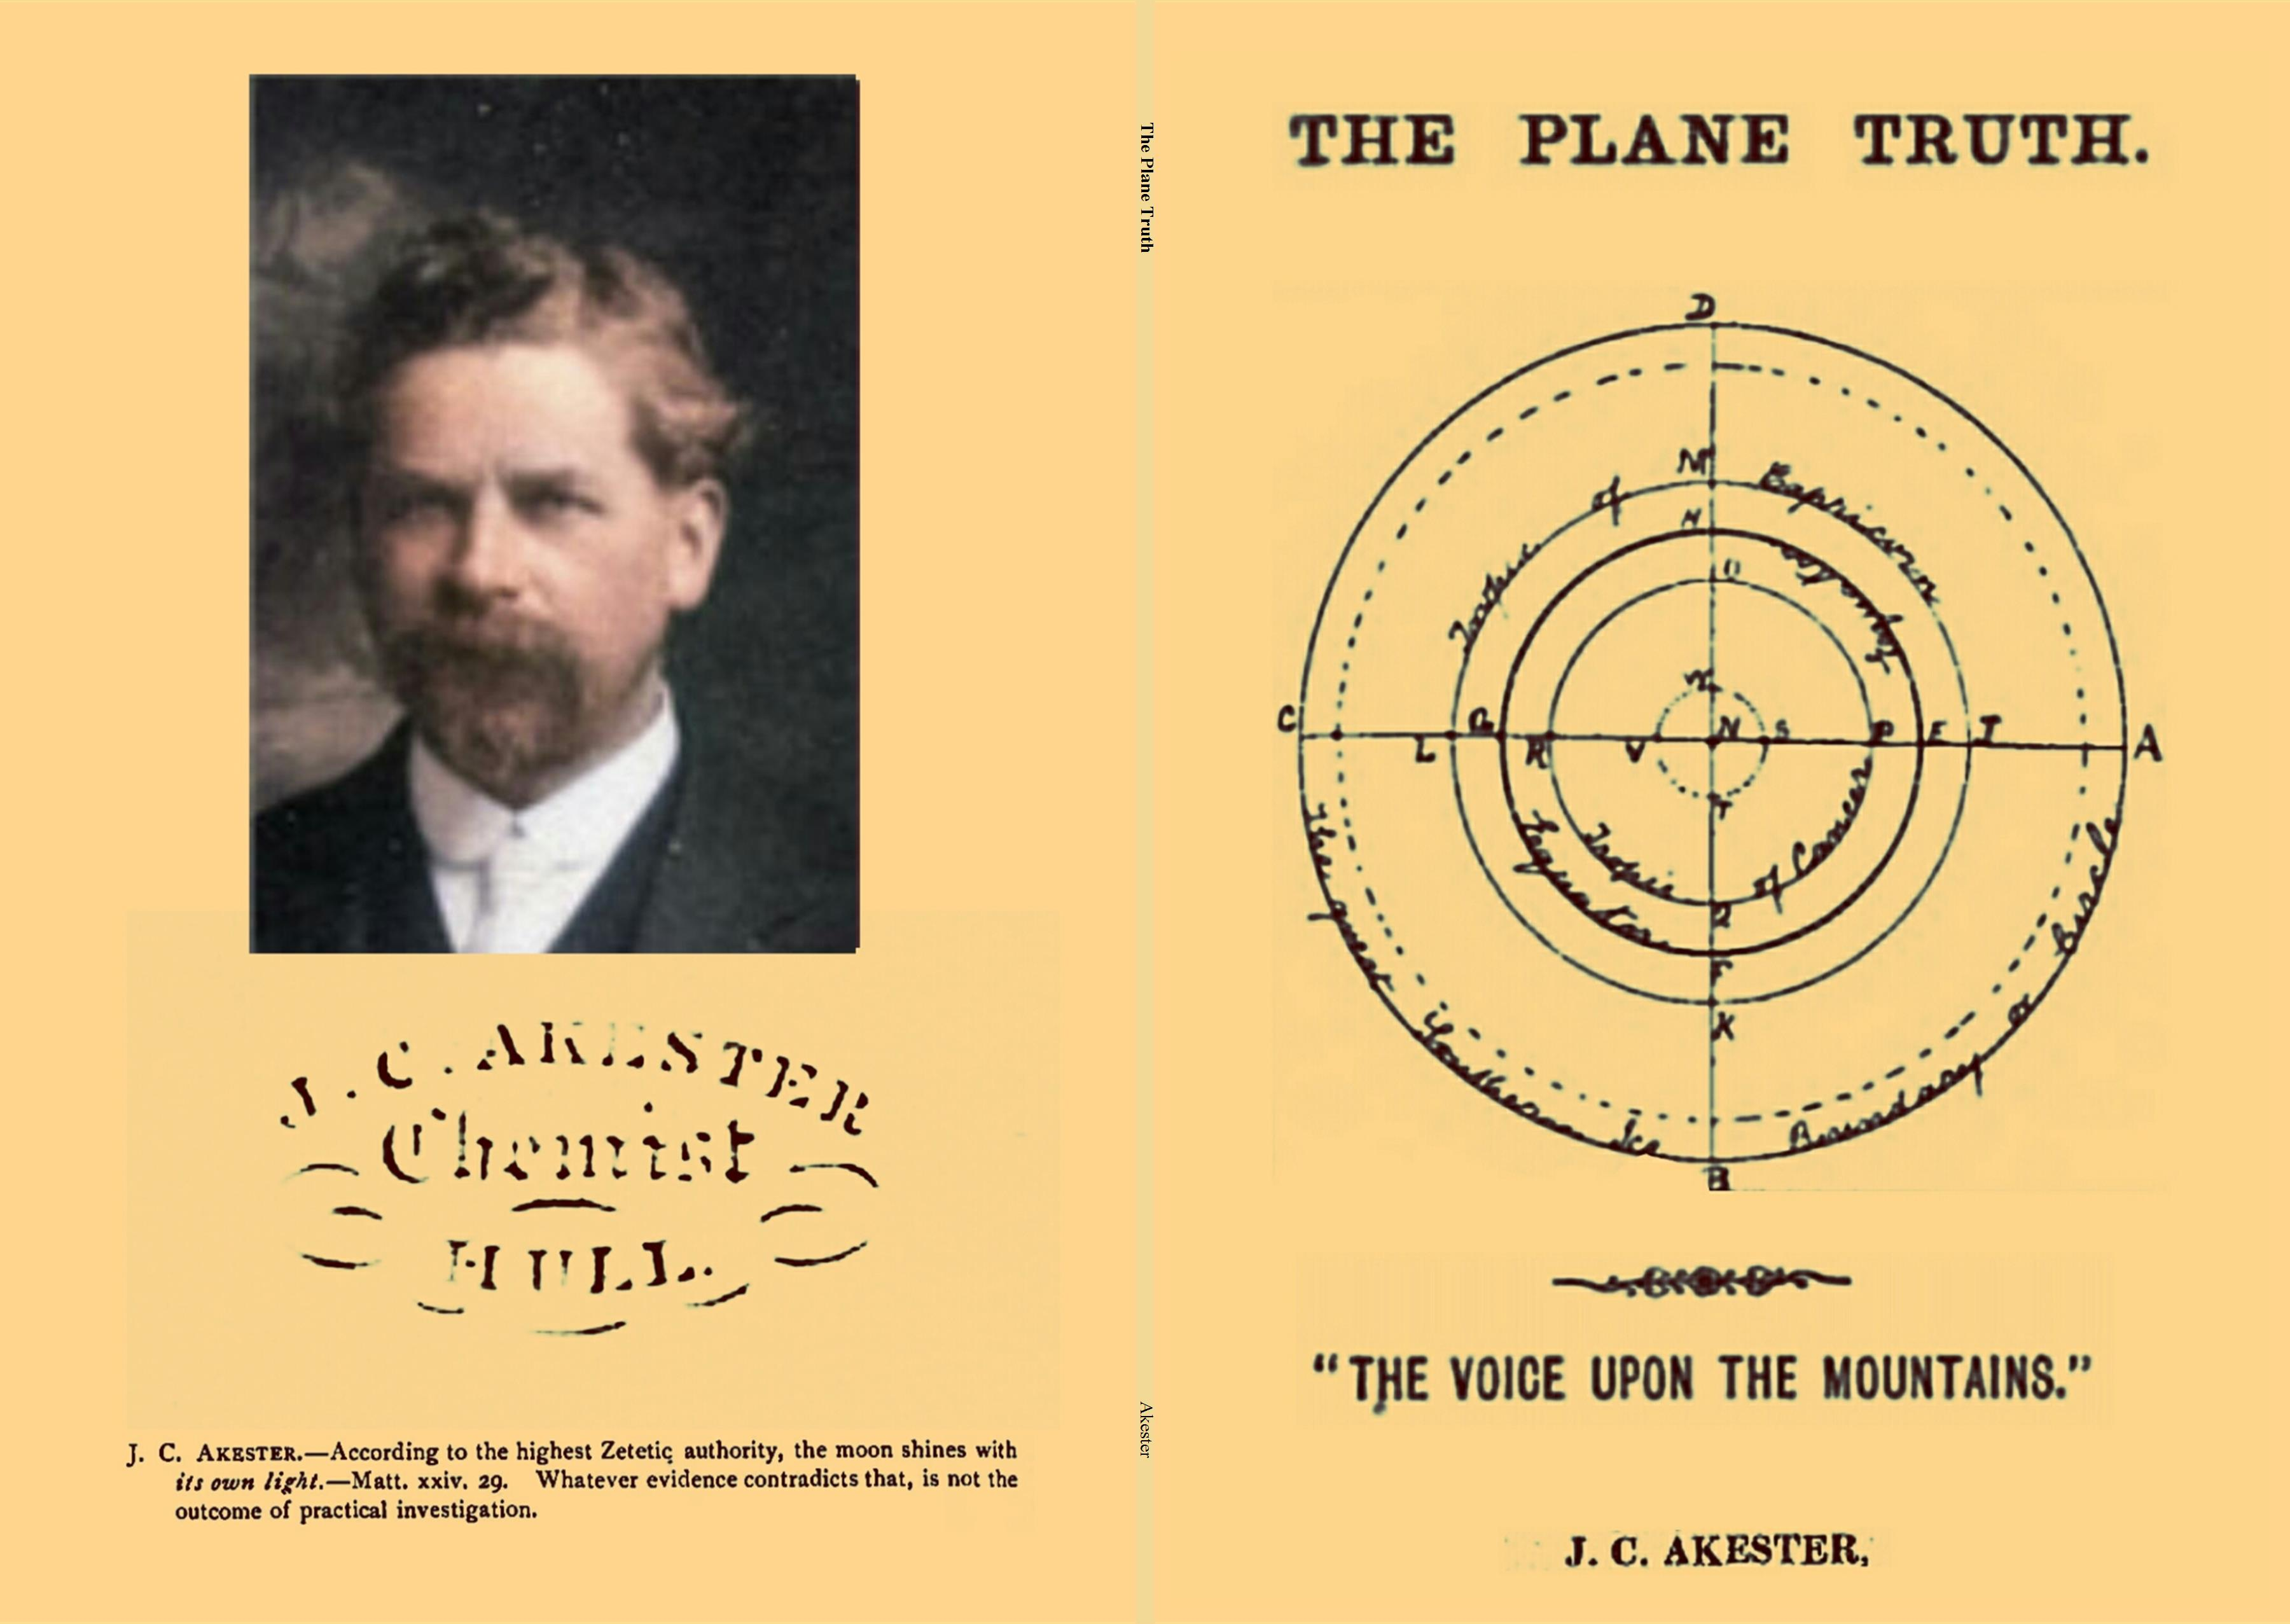 The Plane Truth cover image